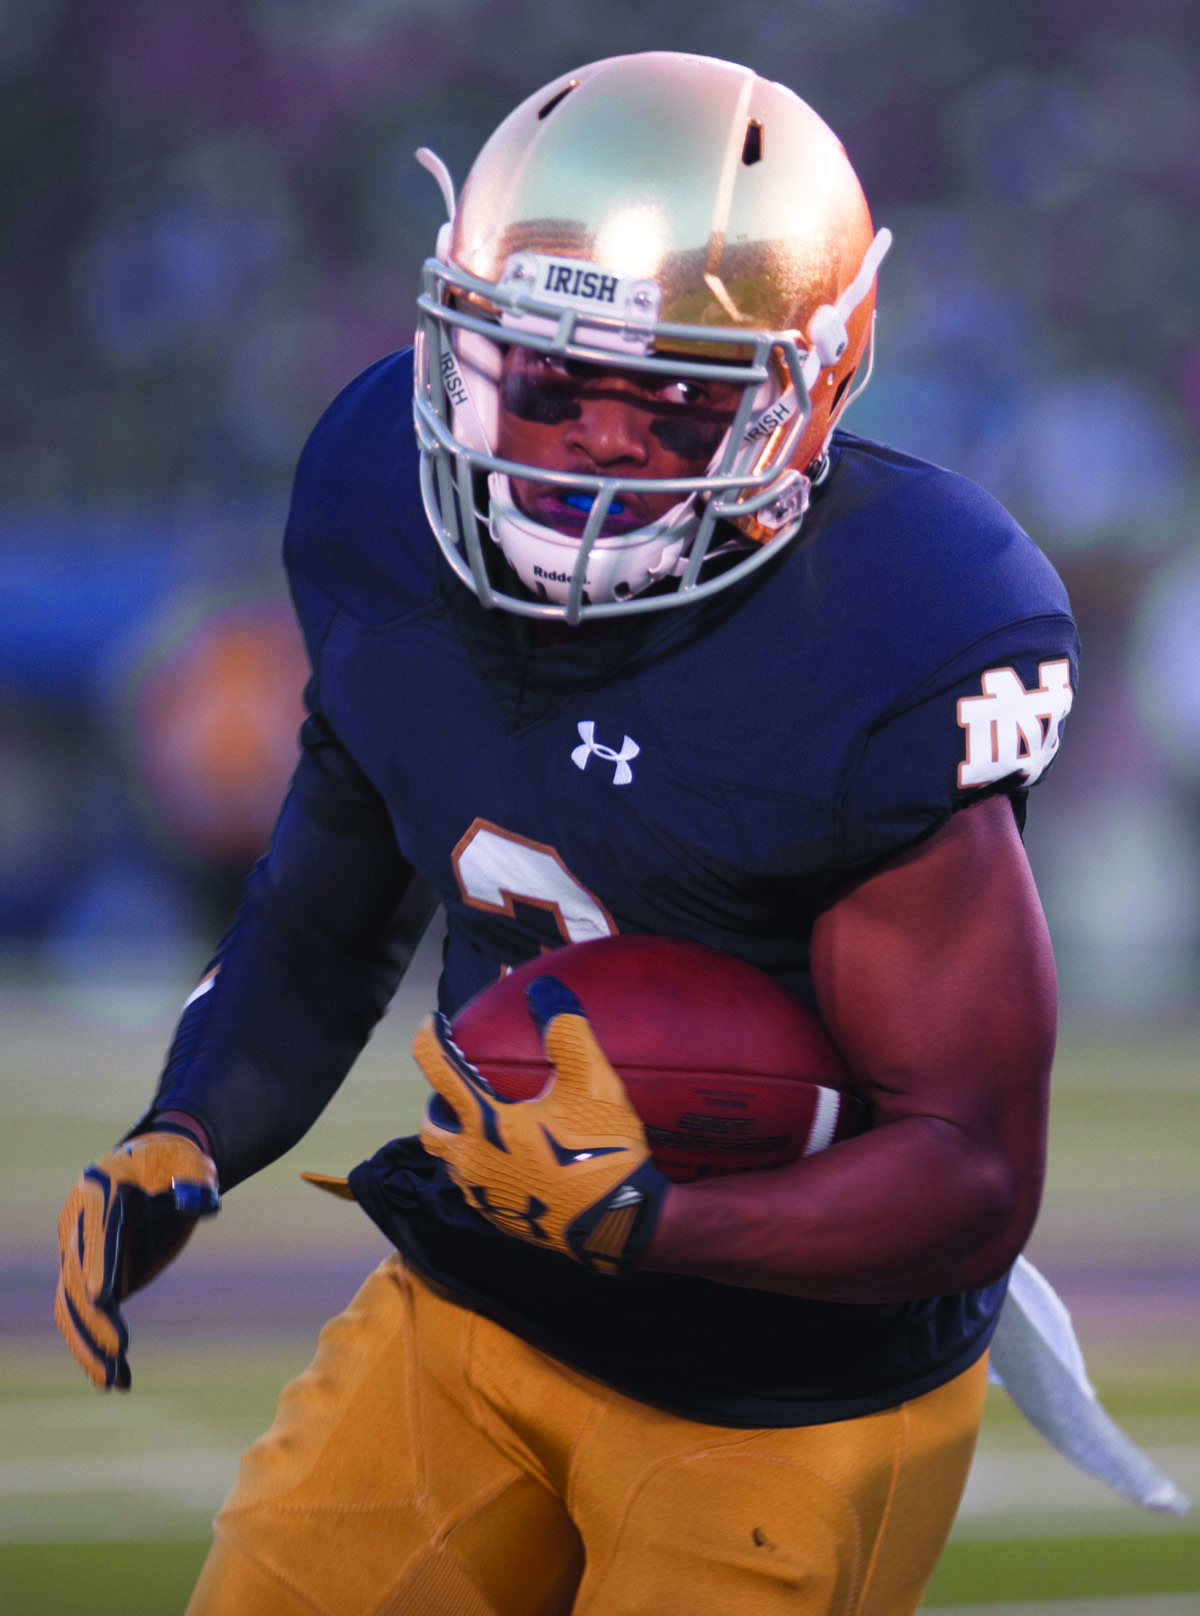 Irish graduate student receiver Amir Carlisle carries the ball during Notre Dame's 38-7 win over Texas at Notre Dame Stadium on Sept. 5.